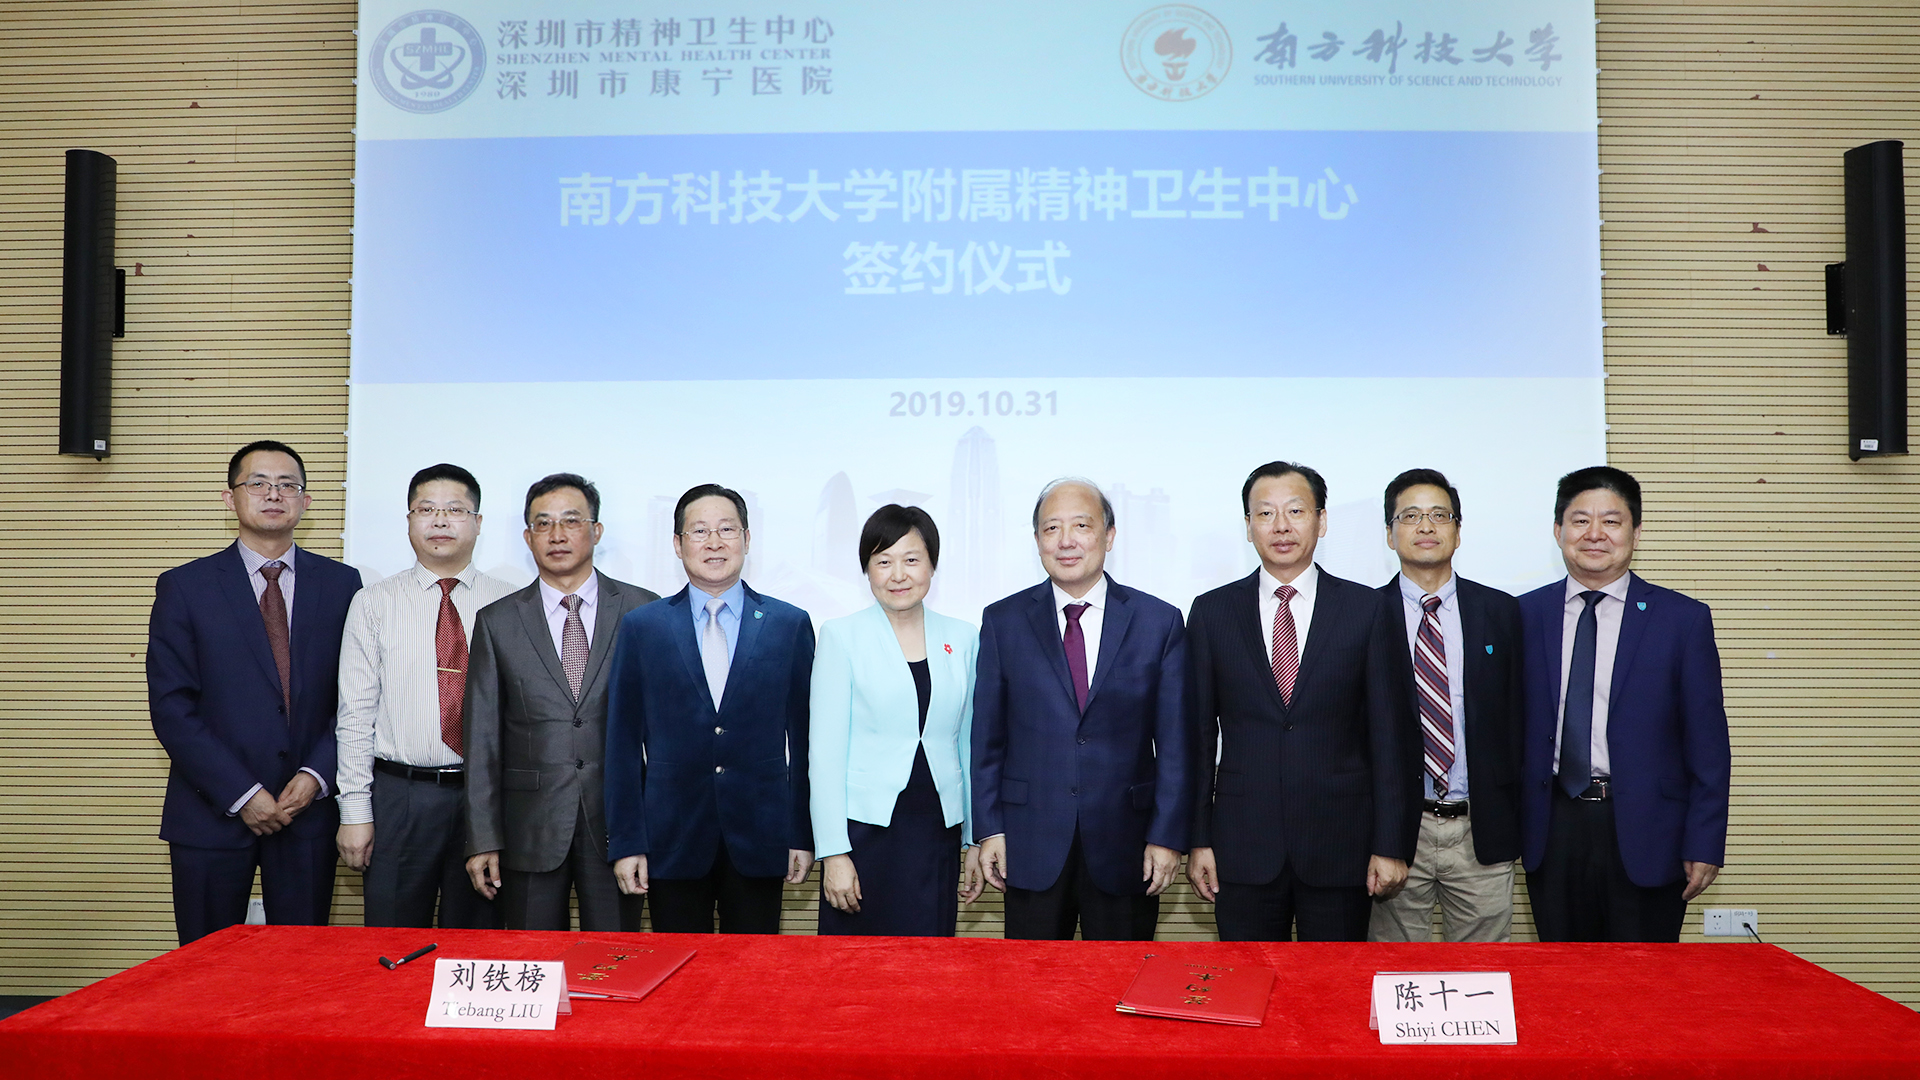 SUSTech to build an affiliated mental health center with Shenzhen Kangning Hospital